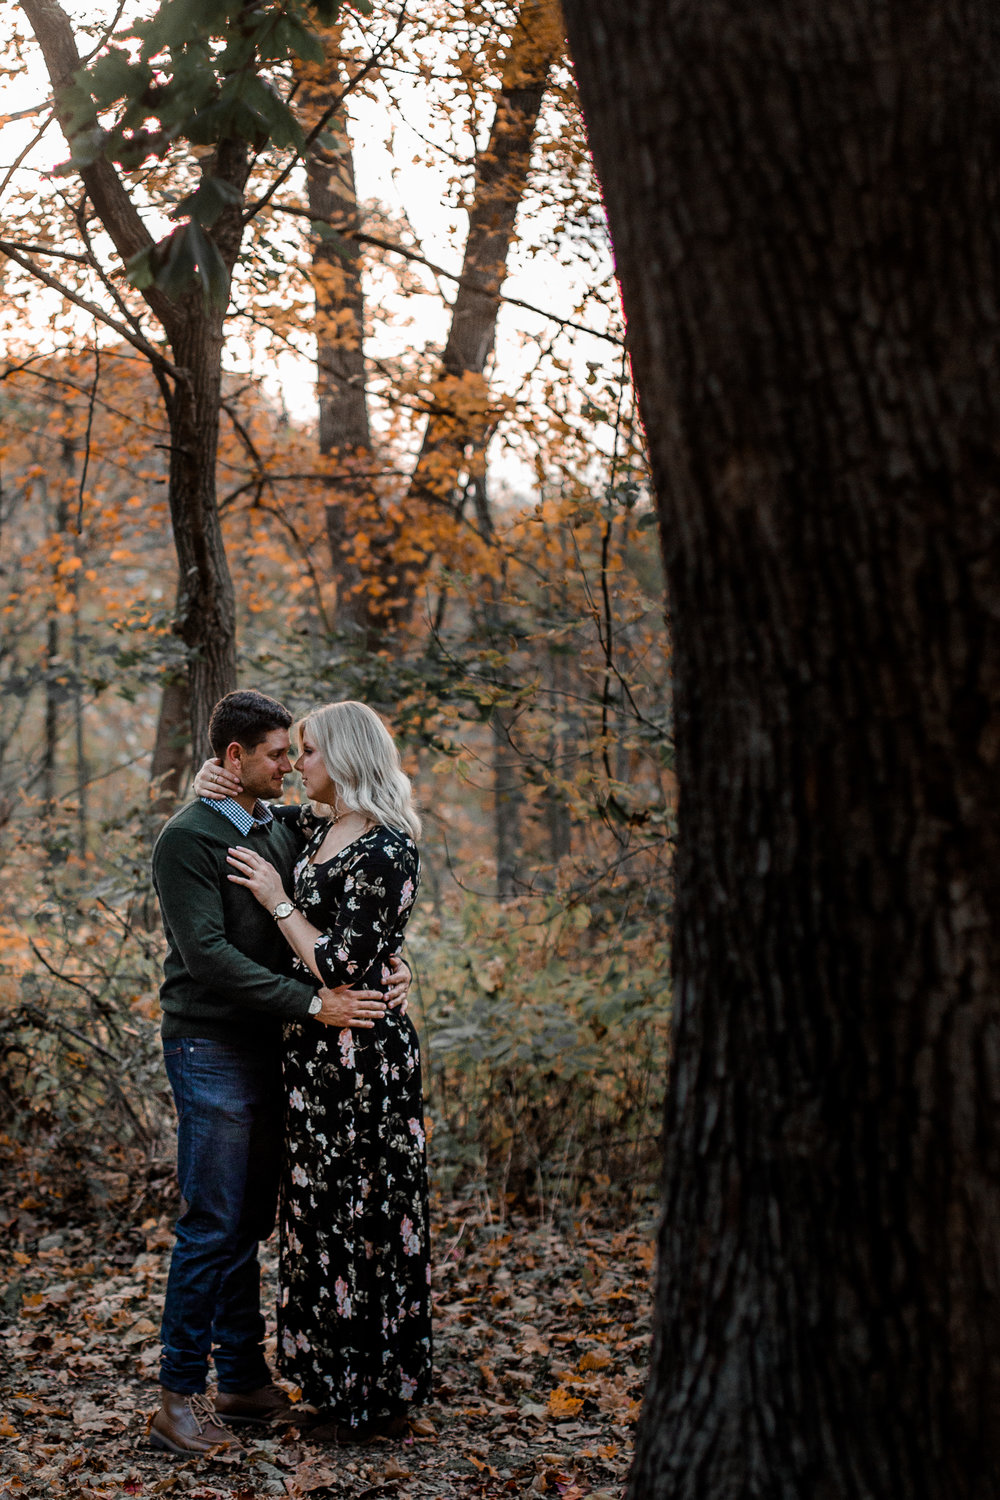 nicole-daacke-photography-carefree-bohemian-lancaster-pa-pennsylvania-engagement-photos-engagement-session-golden-sunset-adventure-session-in-lancaster-pa-lancaster-pa-outdoor-wedding-photographer-56.jpg